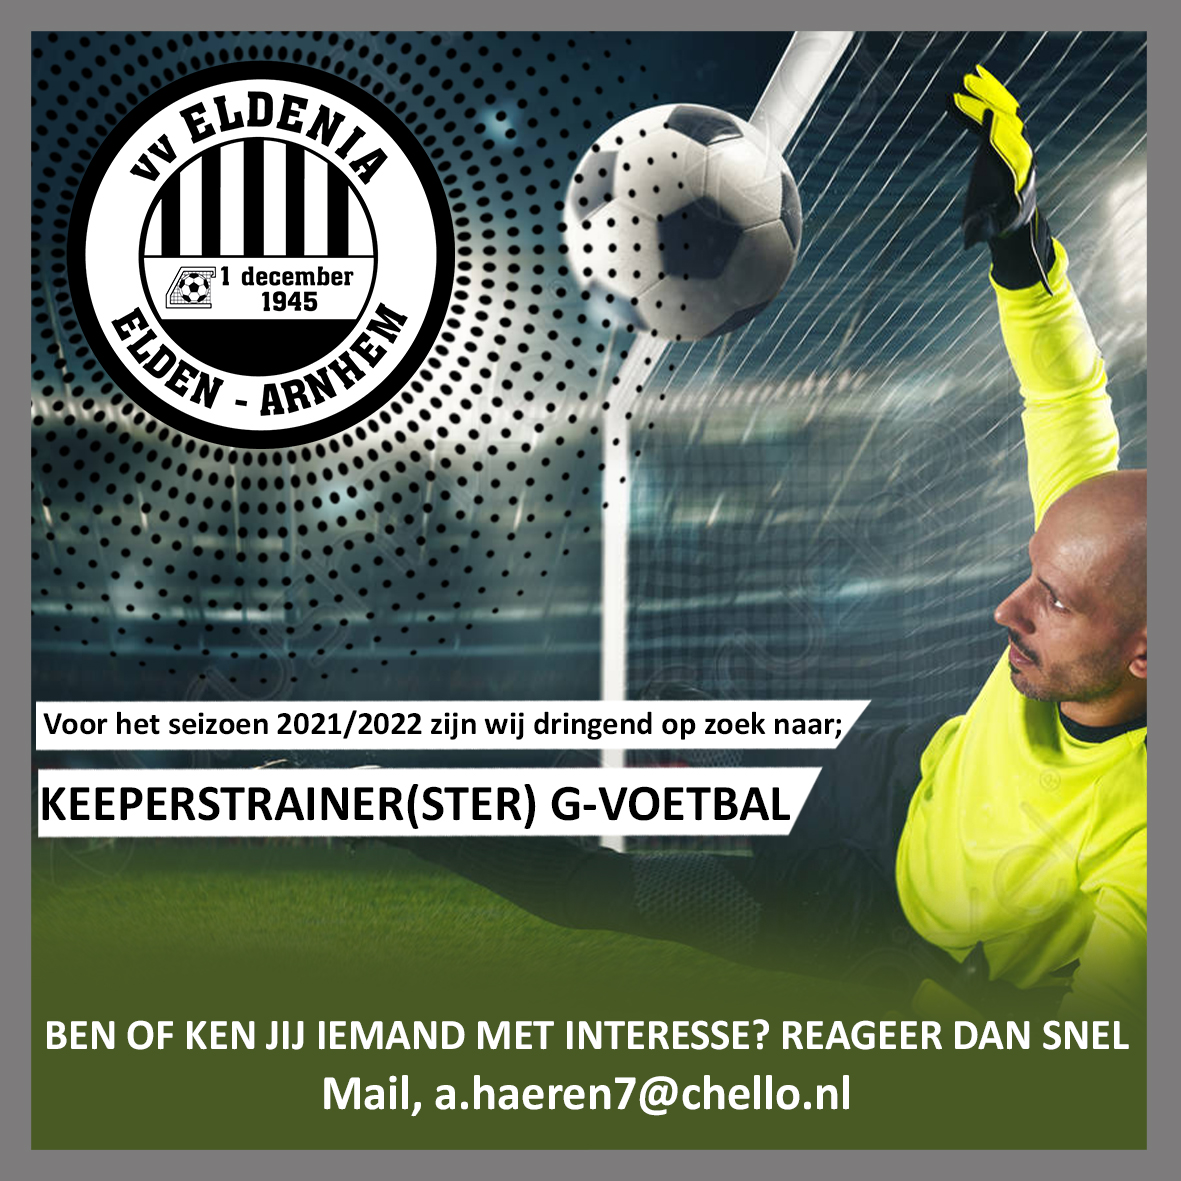 Keeperstrainer(ster) G-voetbal